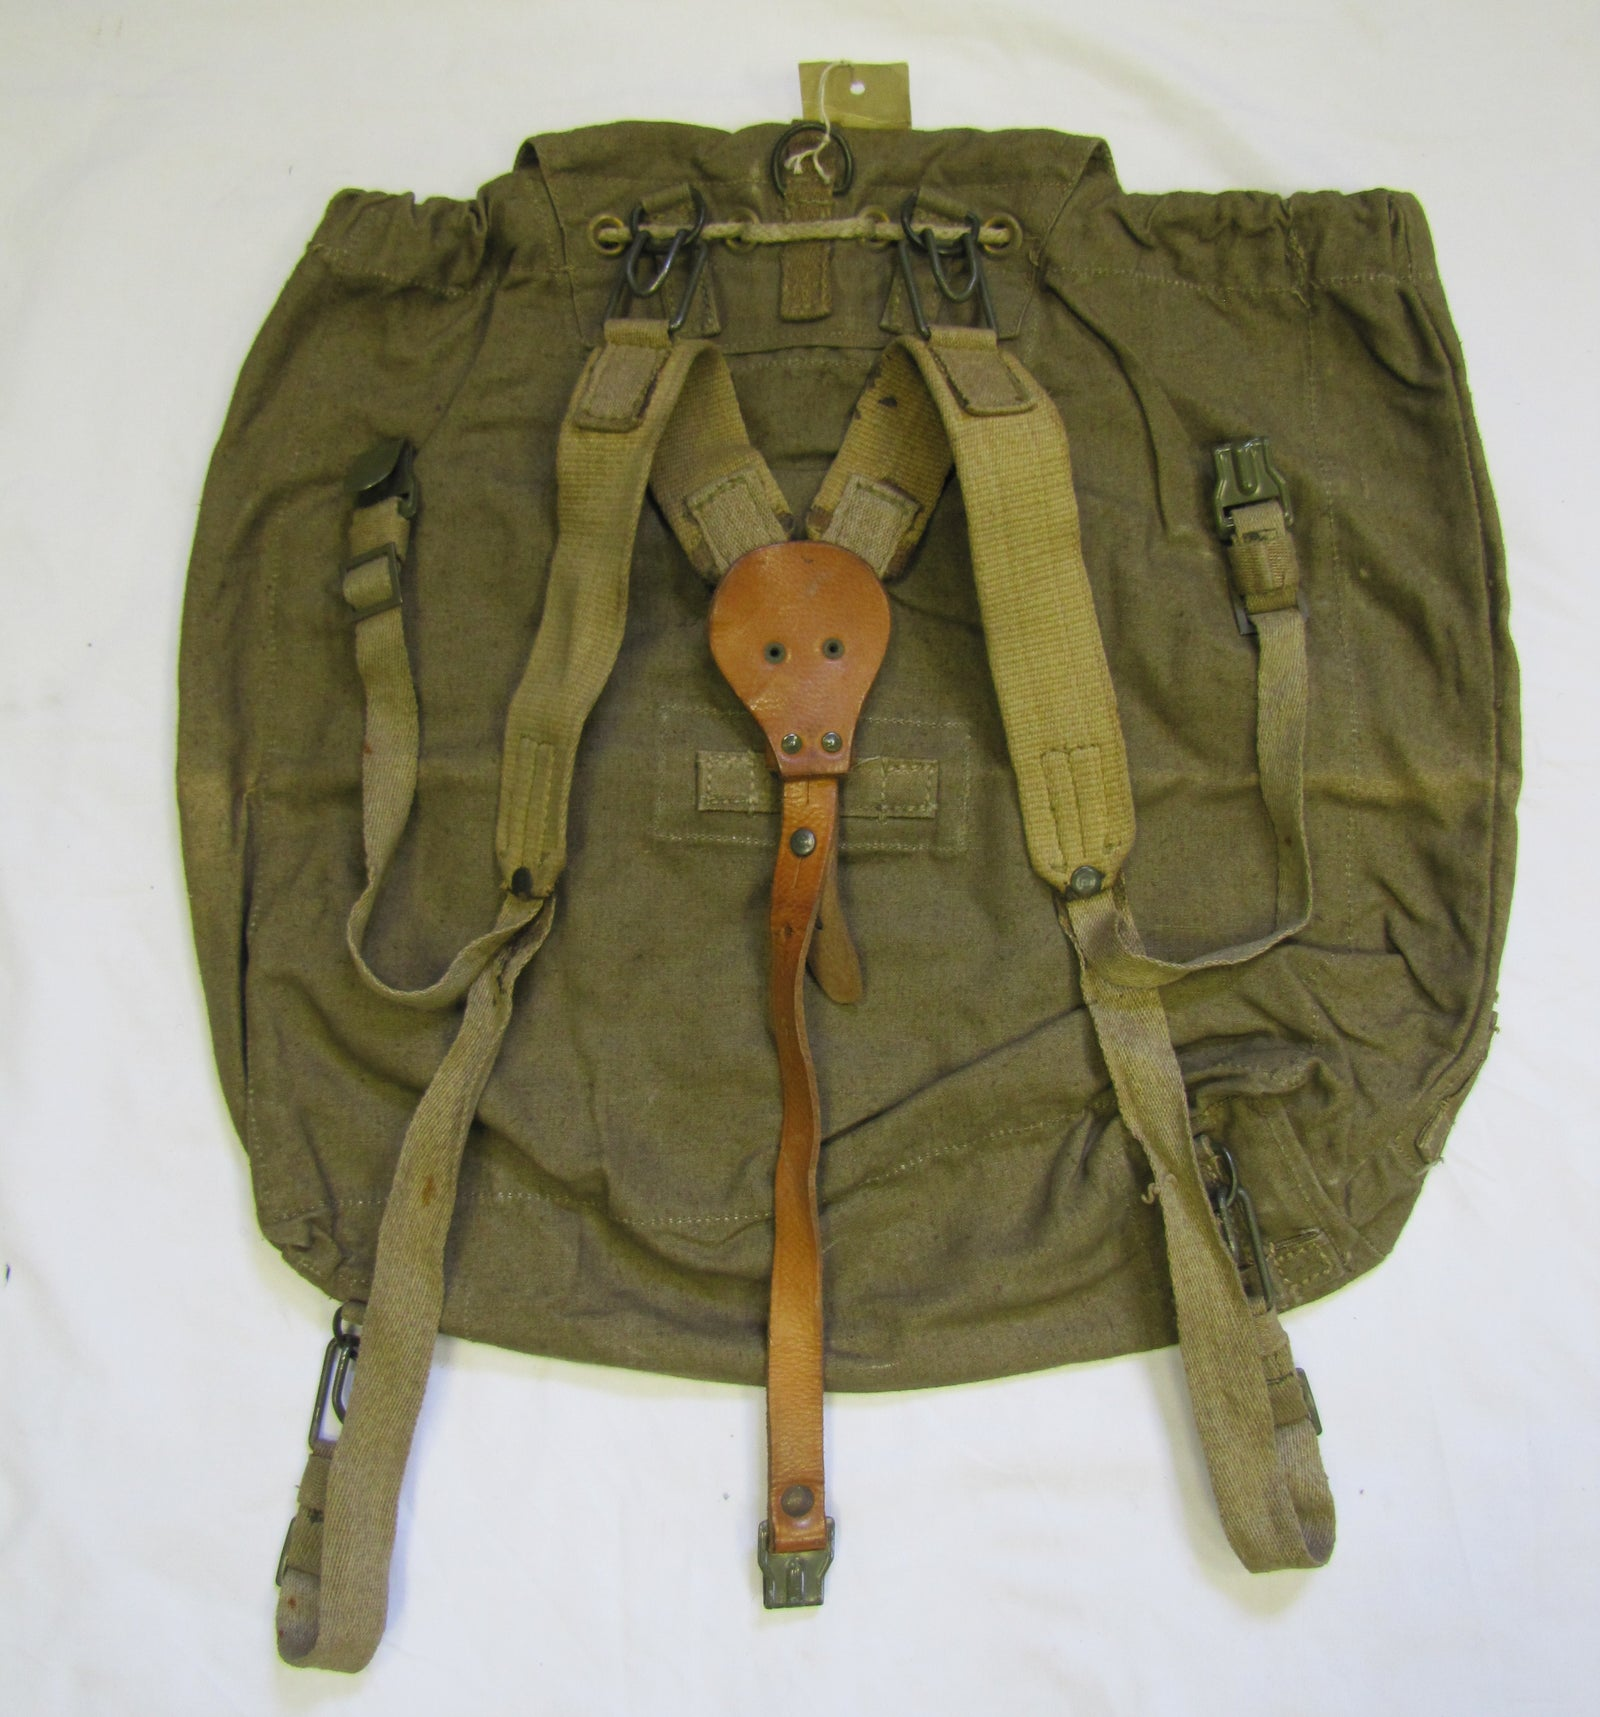 East European army surplus backpack rucksack bushcraft vintage retro medium